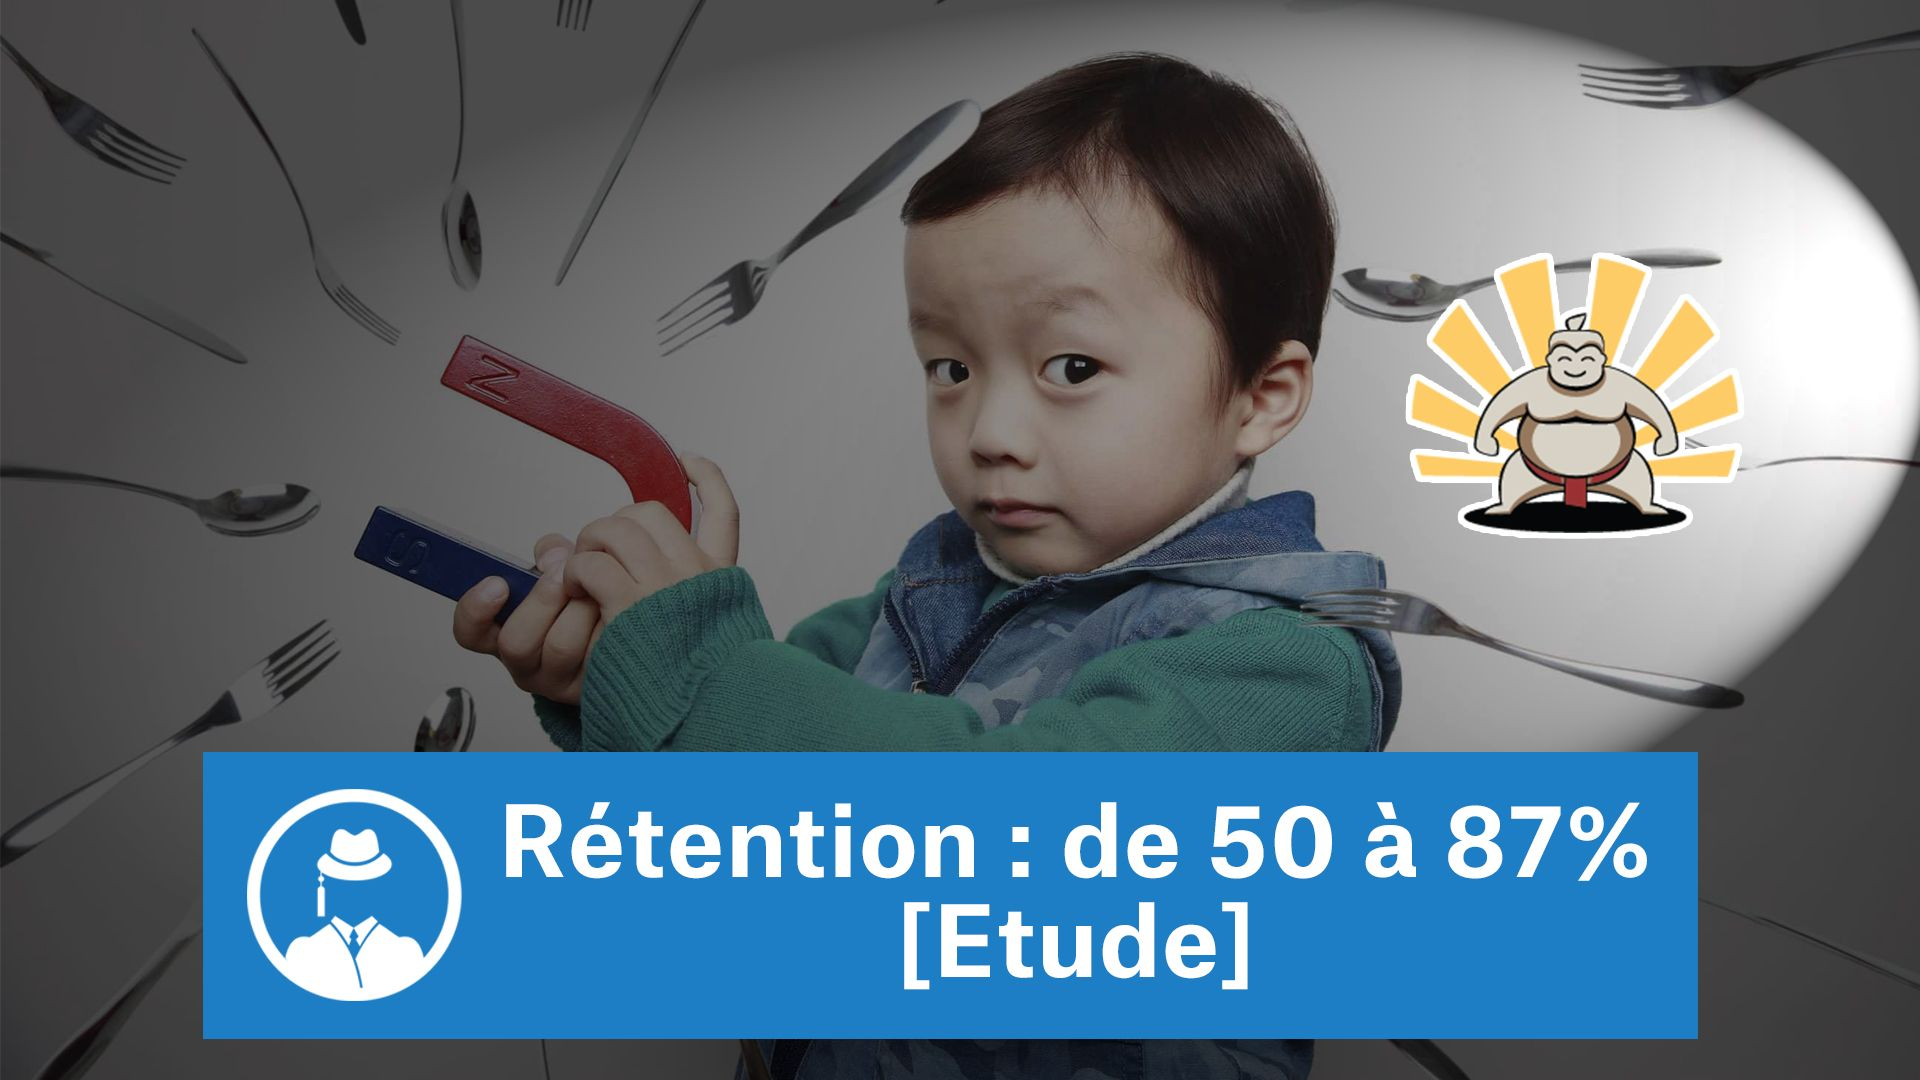 Rétention : de 50 à 87% [Etude] #GrowthHacking #WebMarketing #FormationGrowthHacking #CentreDeFormationFrance #TunnelAARRR #AARRR #SocialMedia #CommunityManagement #SEO #MarketingDigital #SiteWeb